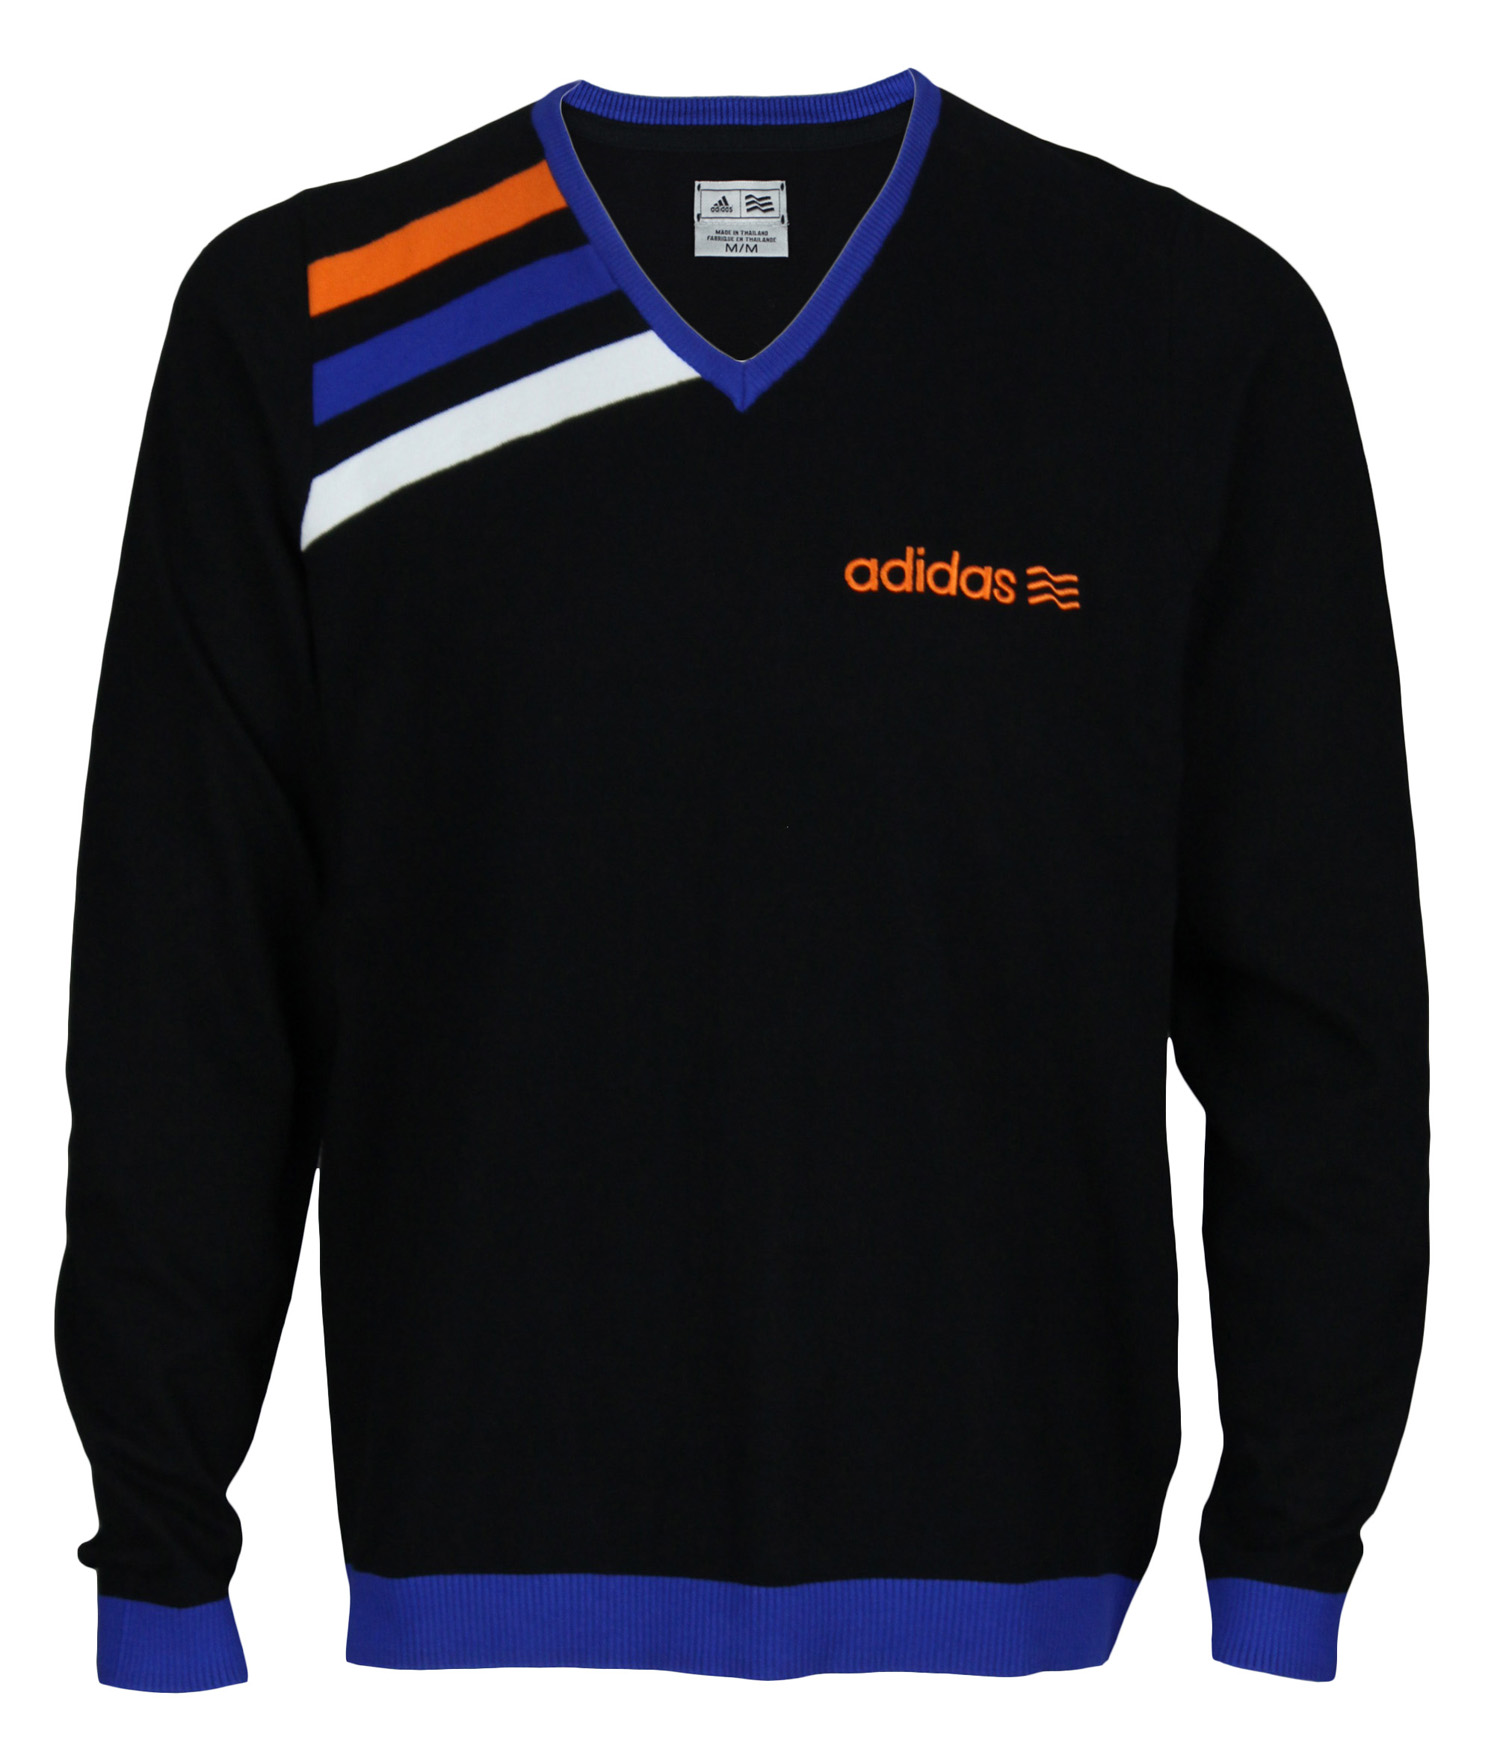 adidas Adidas Mens Athletic Long Sleeve V Neck Pullover Sweater